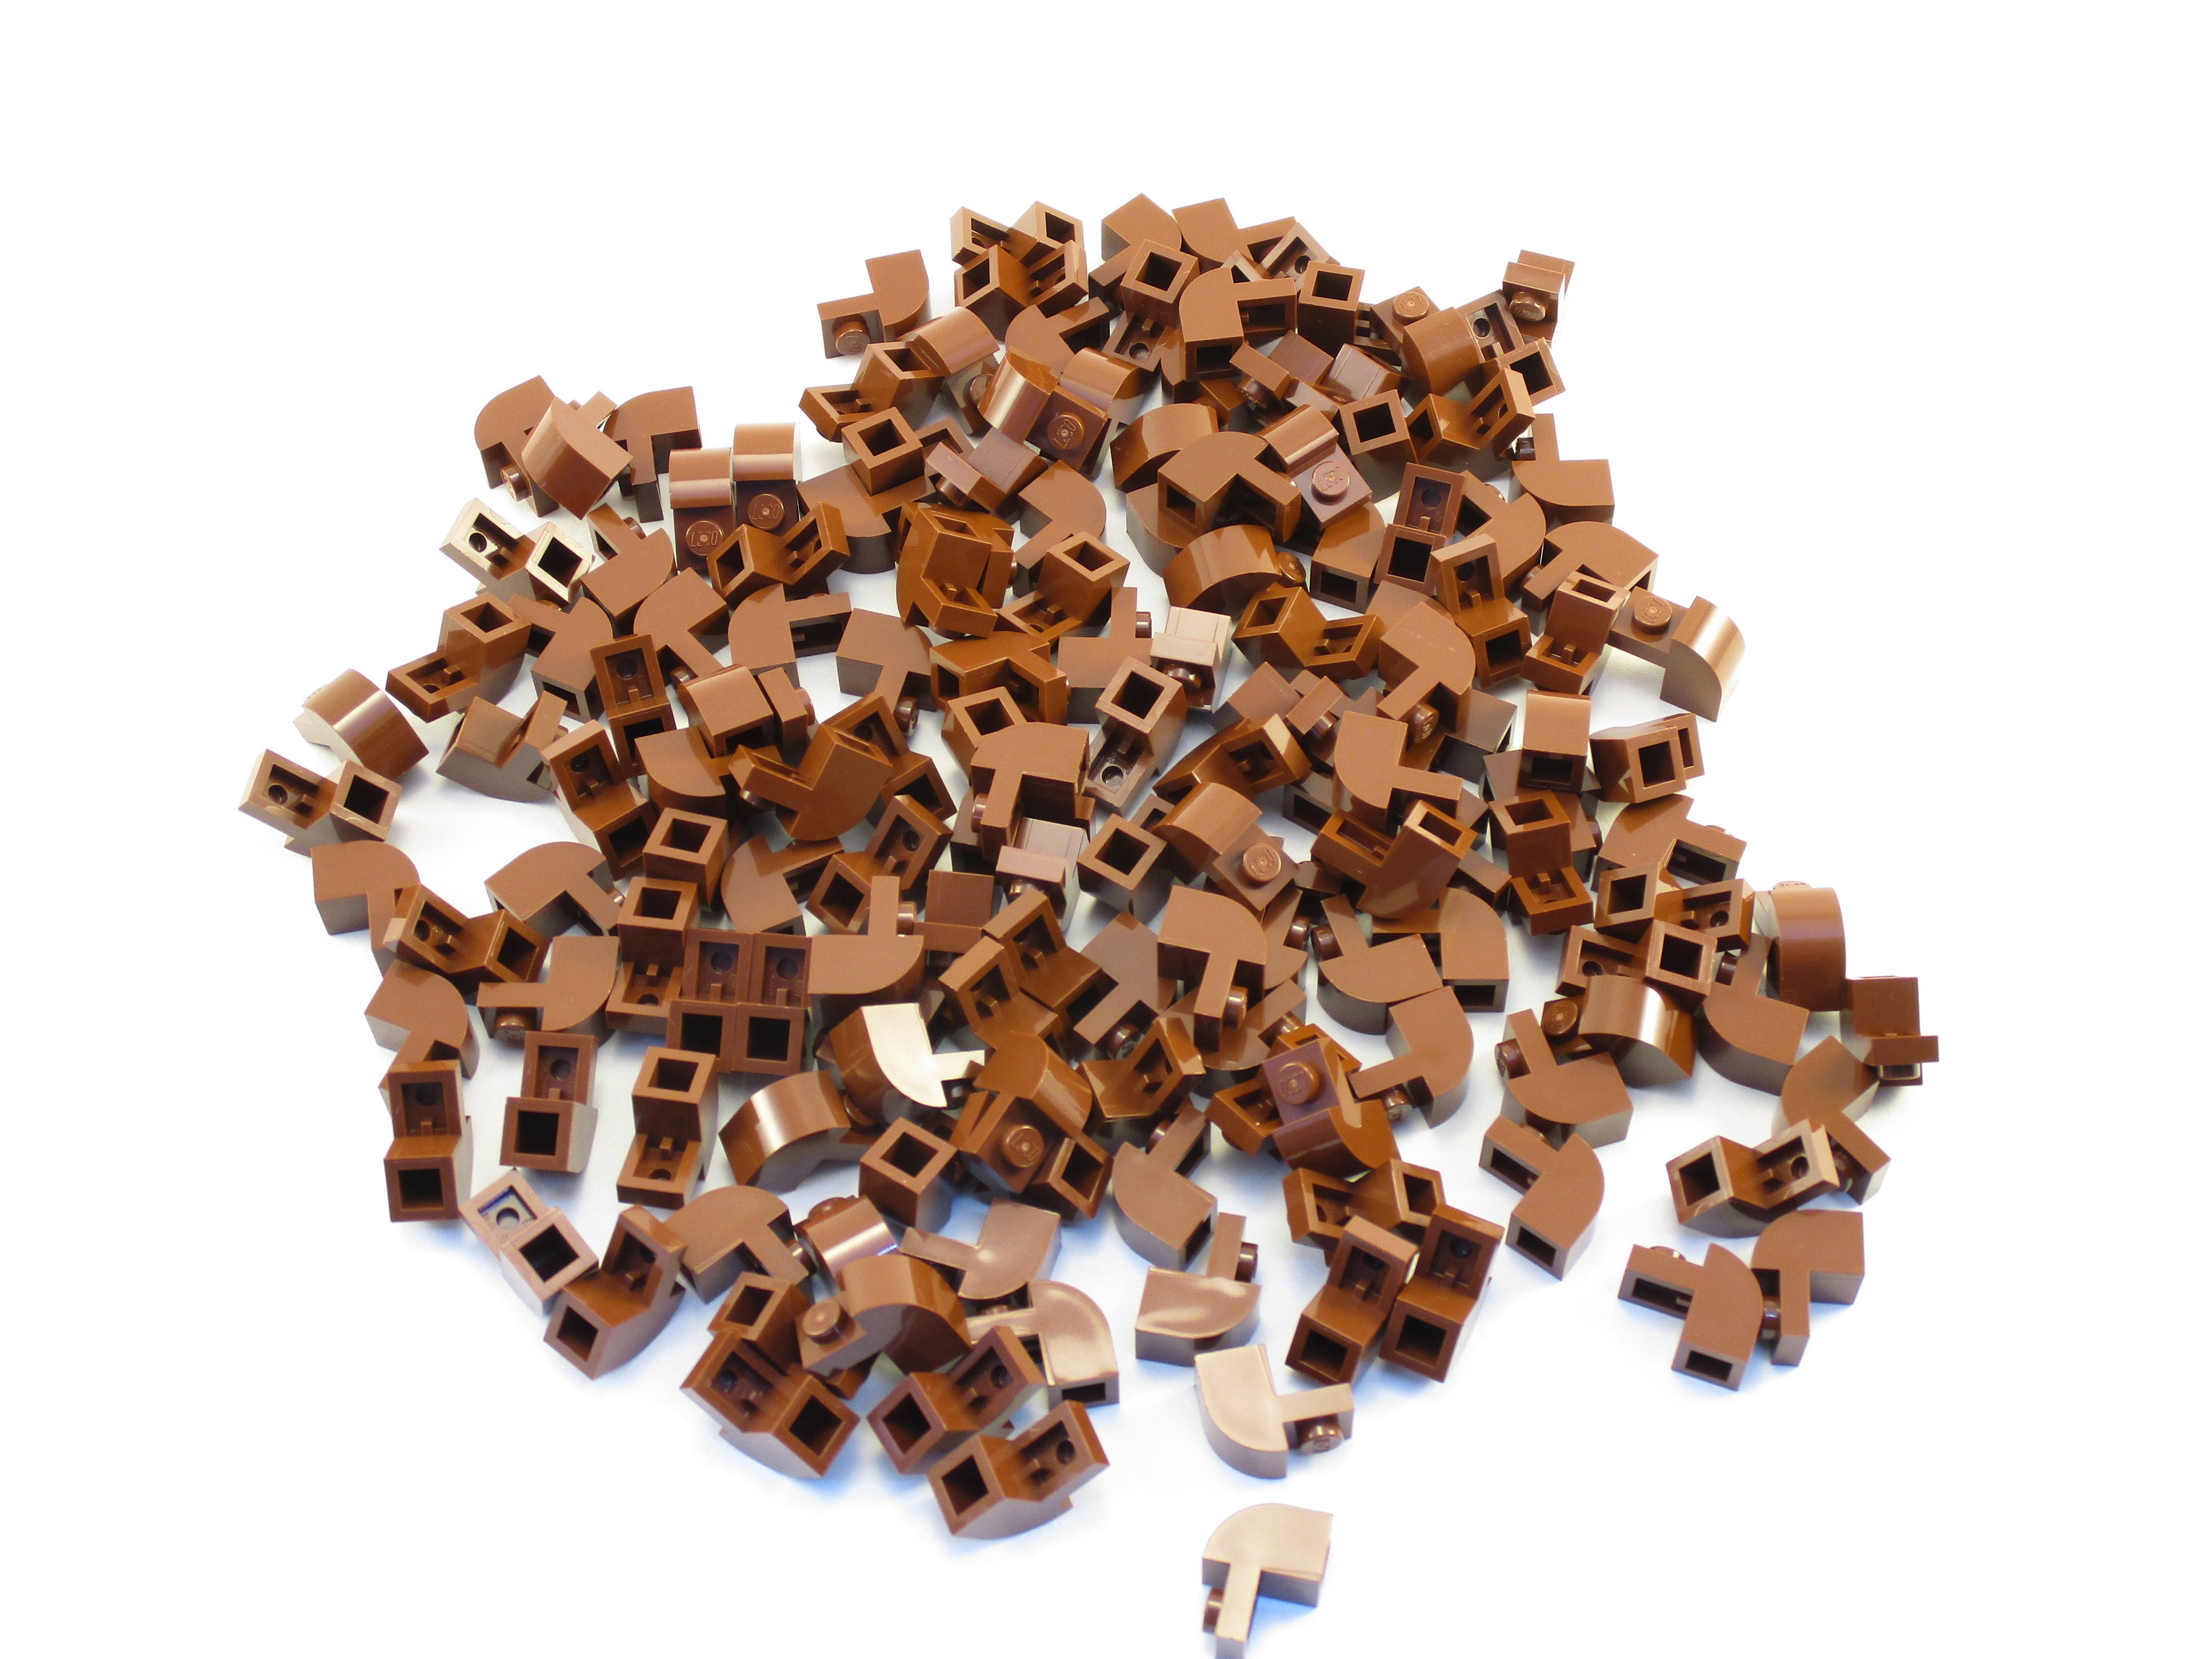 LEGO Reddish Brown Brick Modified 1x2x1 1/3 Curved Top Lot of 50 Parts Pieces 6091